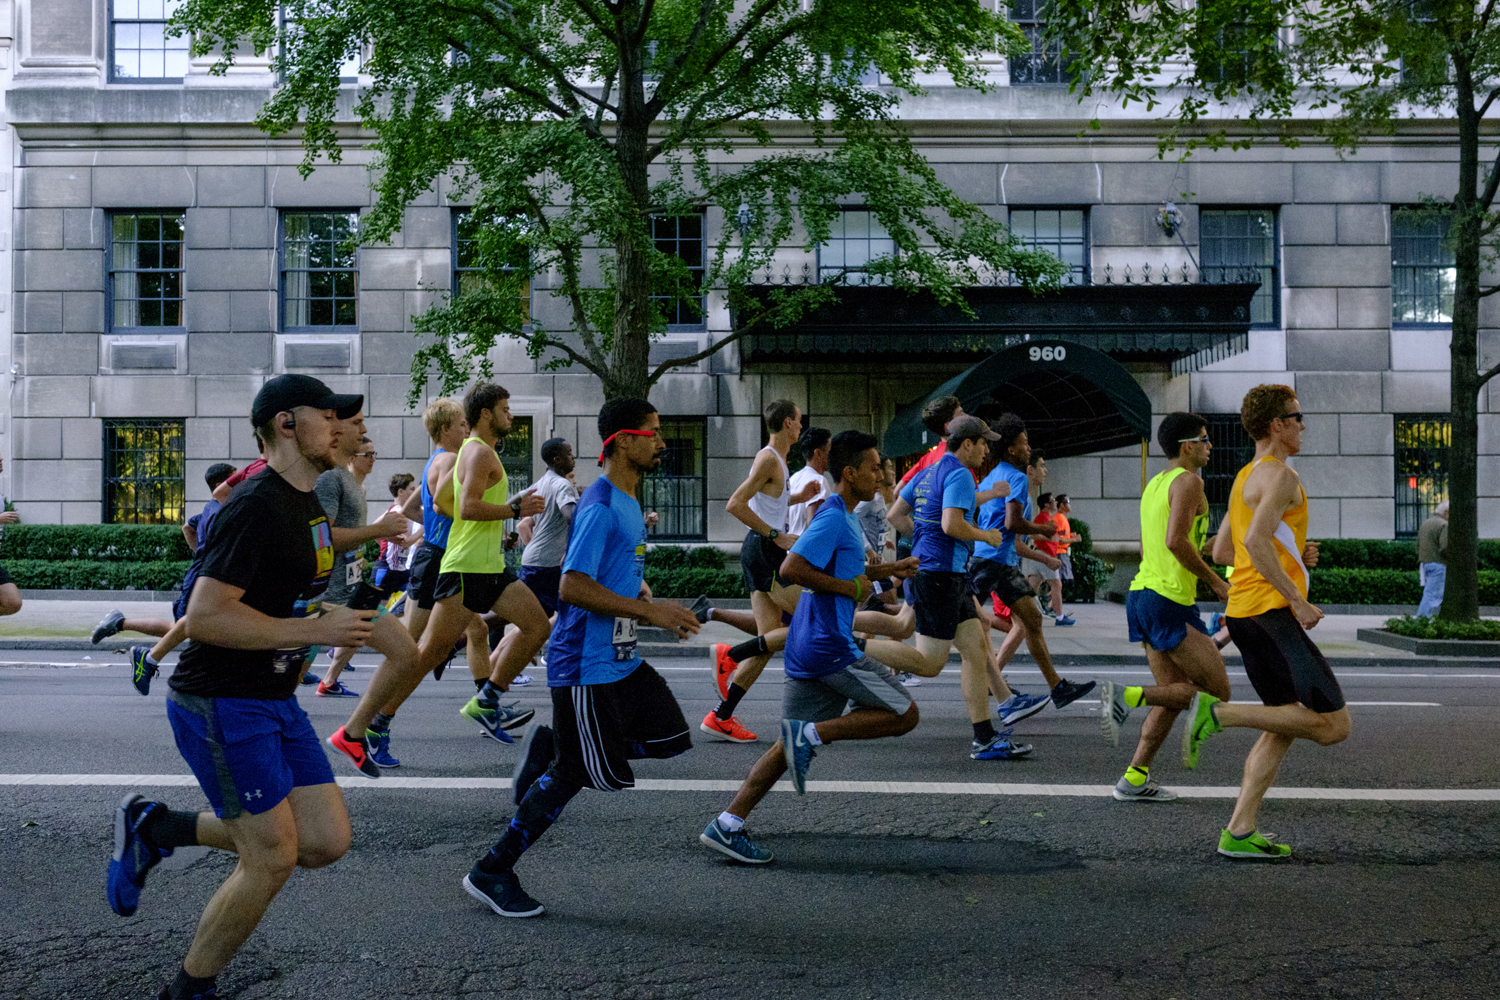 Runners in the New Balance 5th Avenue Mile running past the camera